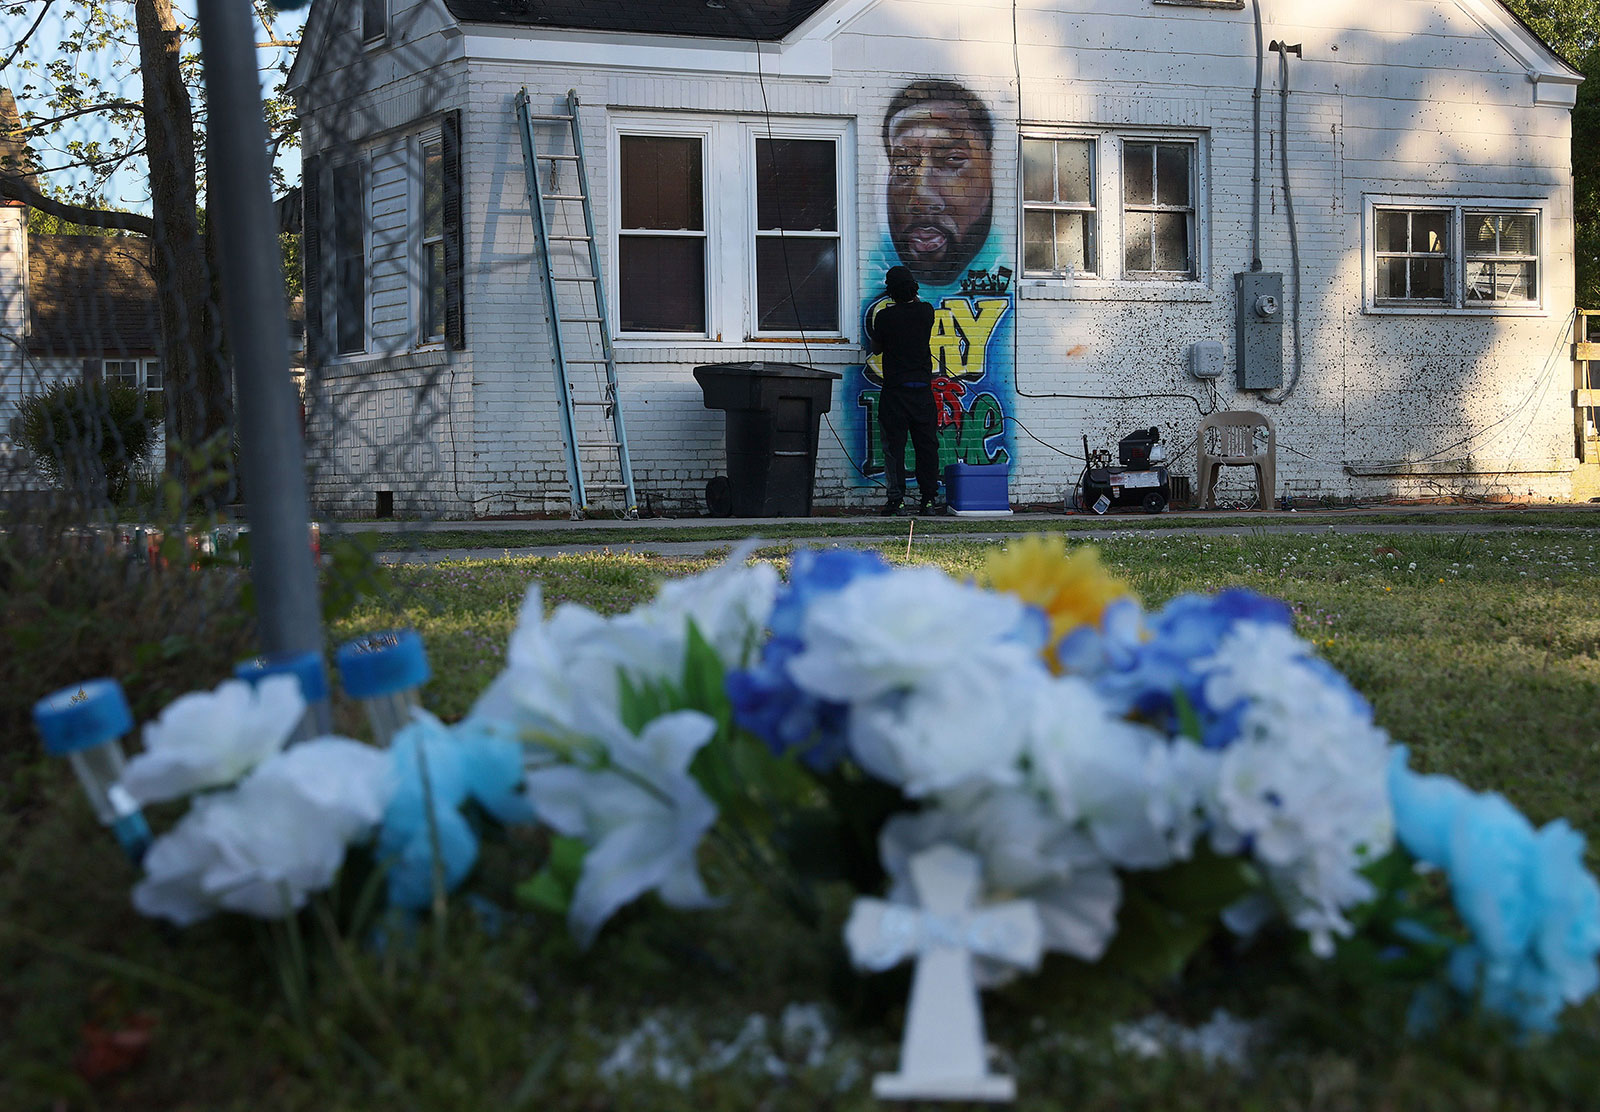 Ulysses Edwards paints a portrait of Andrew Brown Jr. on the side of a house near where he was killed in Elizabeth City, North Carolina.